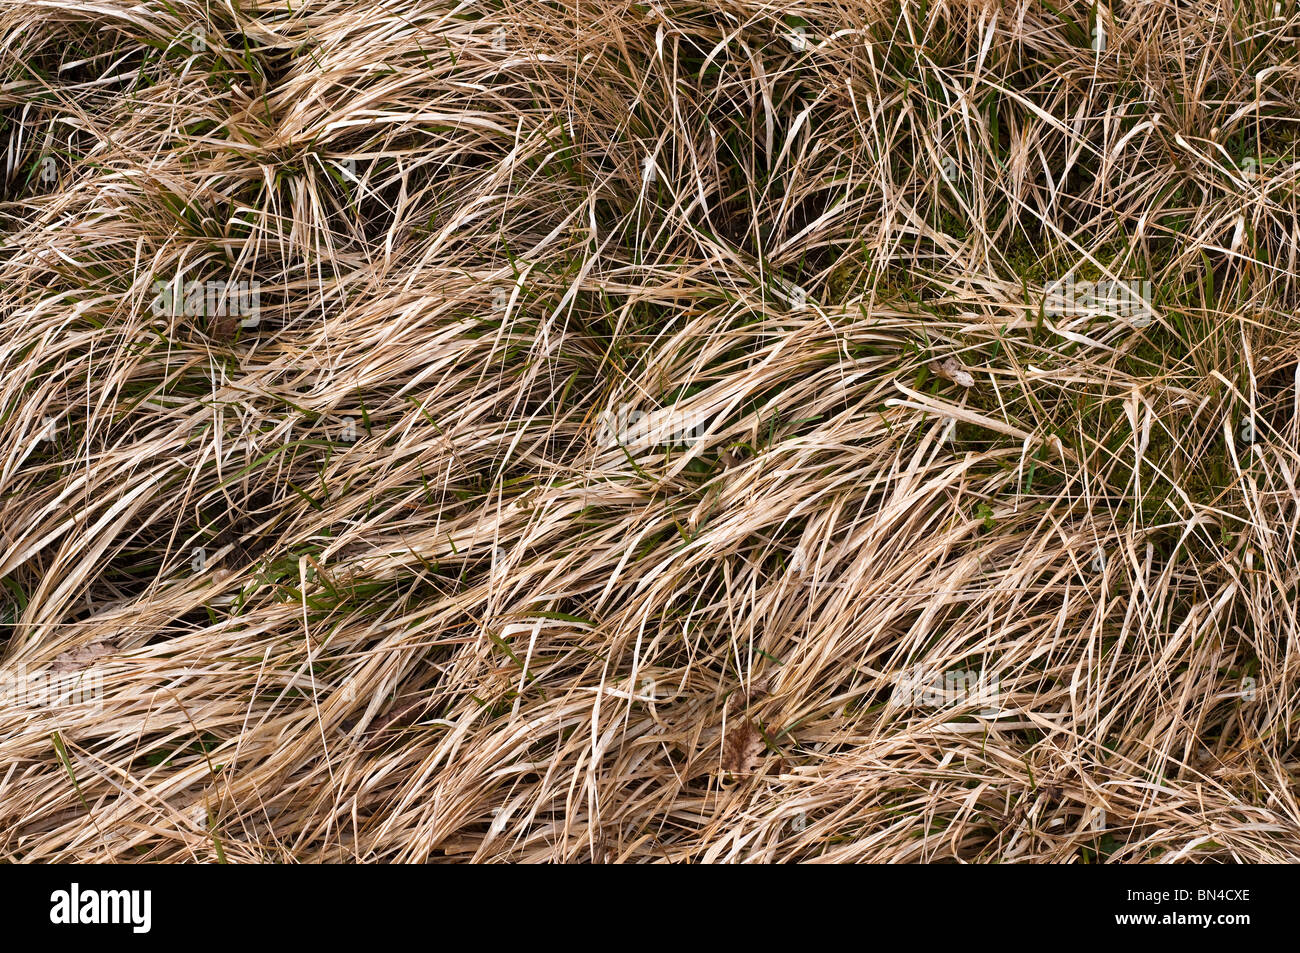 Rough uncut grass at side of road - France. - Stock Image